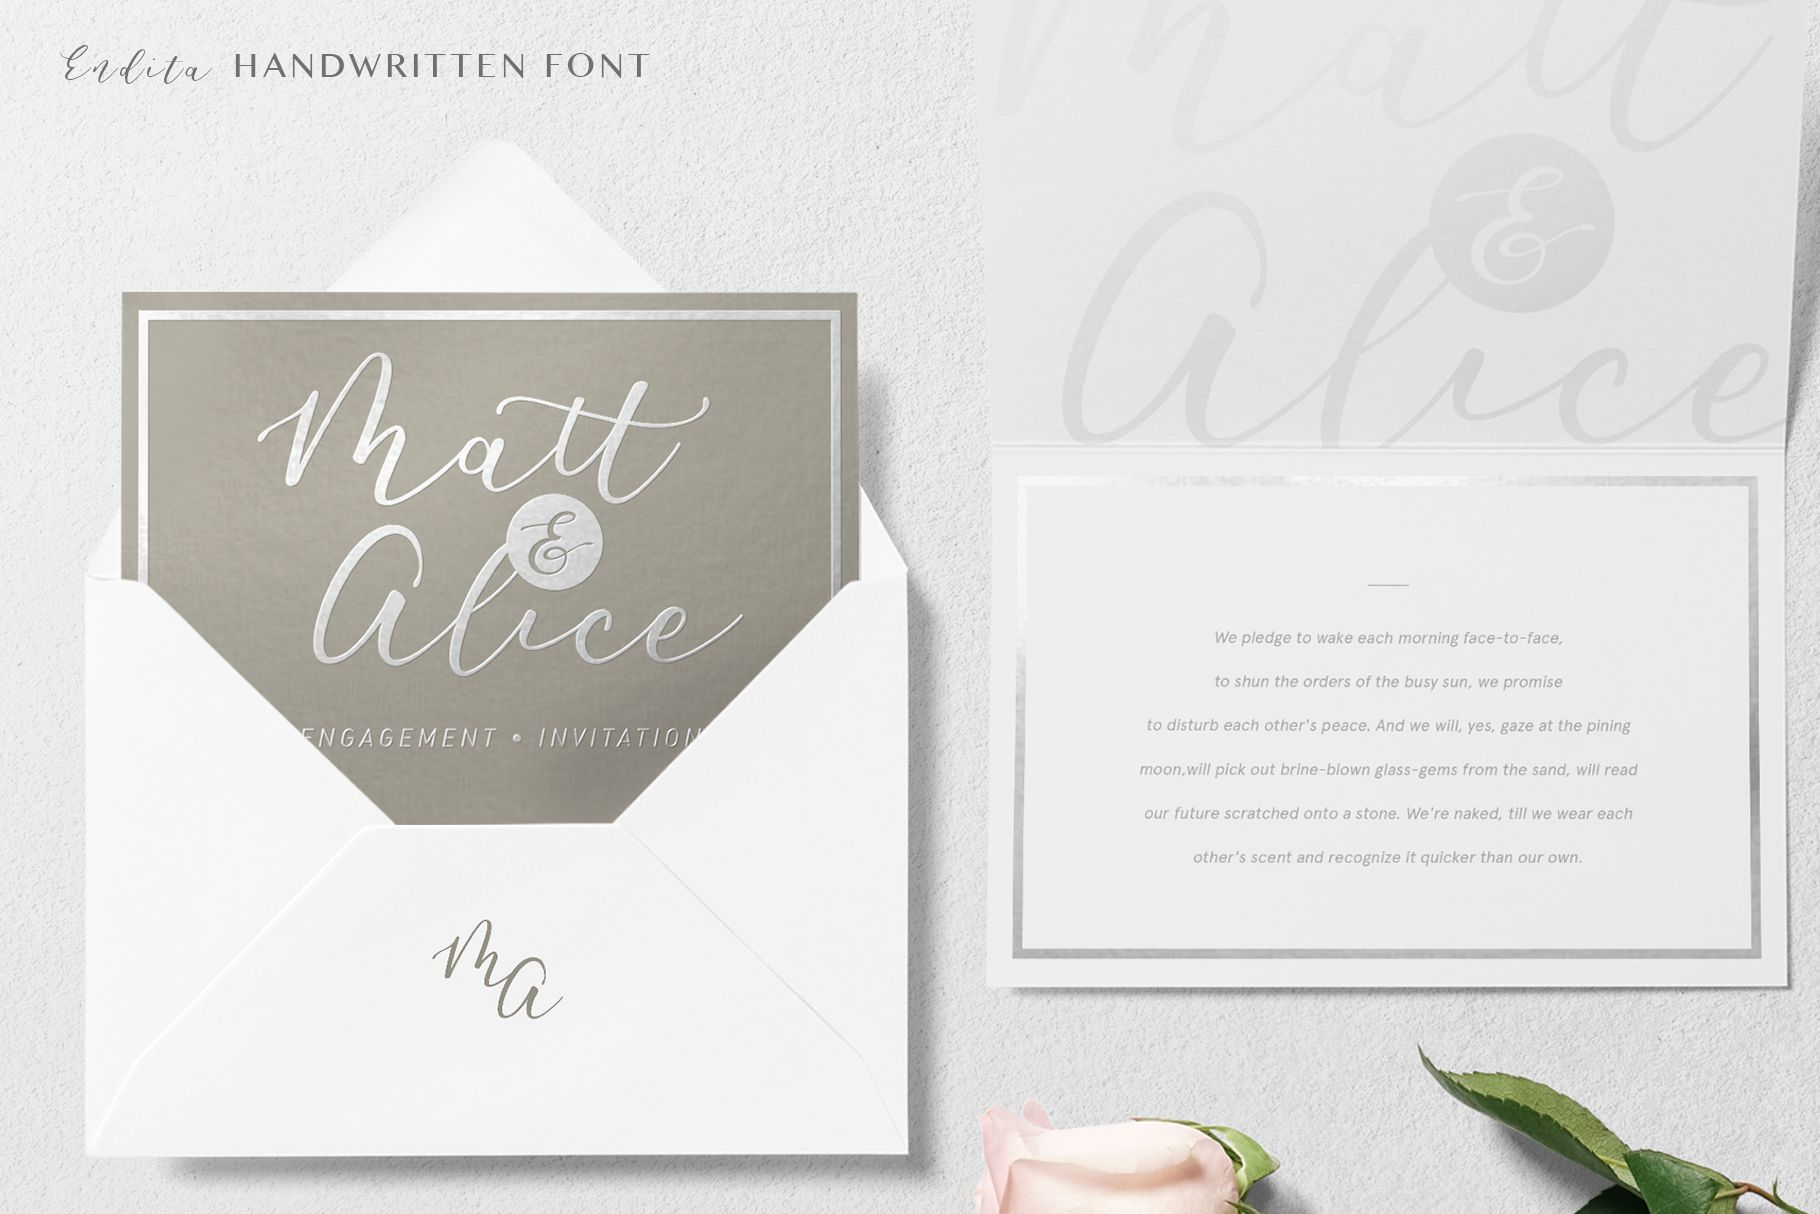 Endita Handwritten Font and Extras example image 2